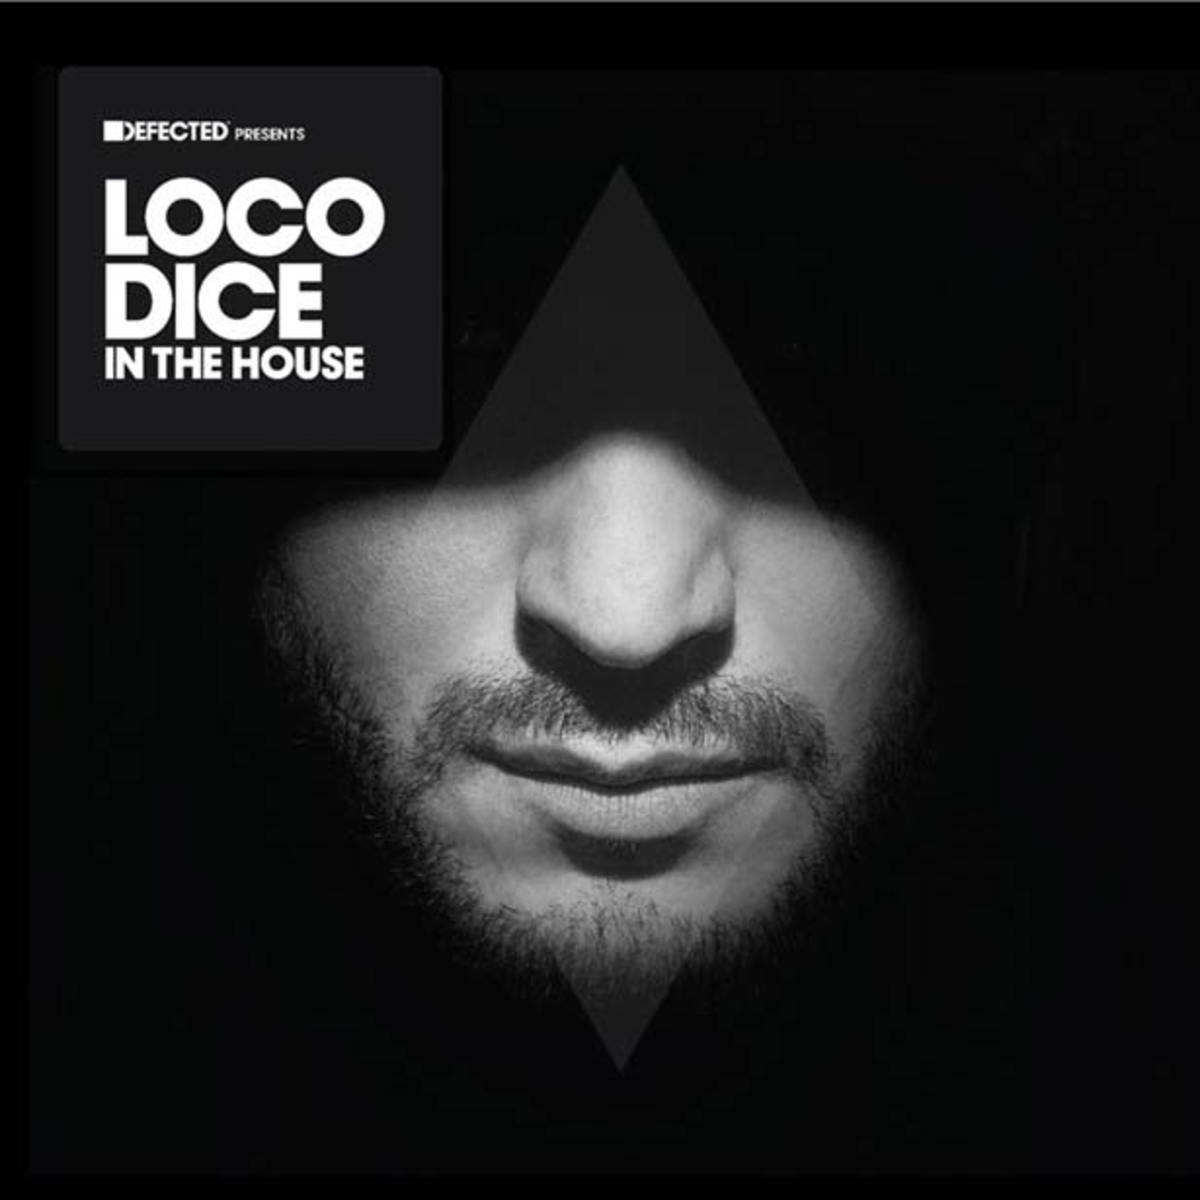 EDM News - Loco Dice Announces New Mix On Defected